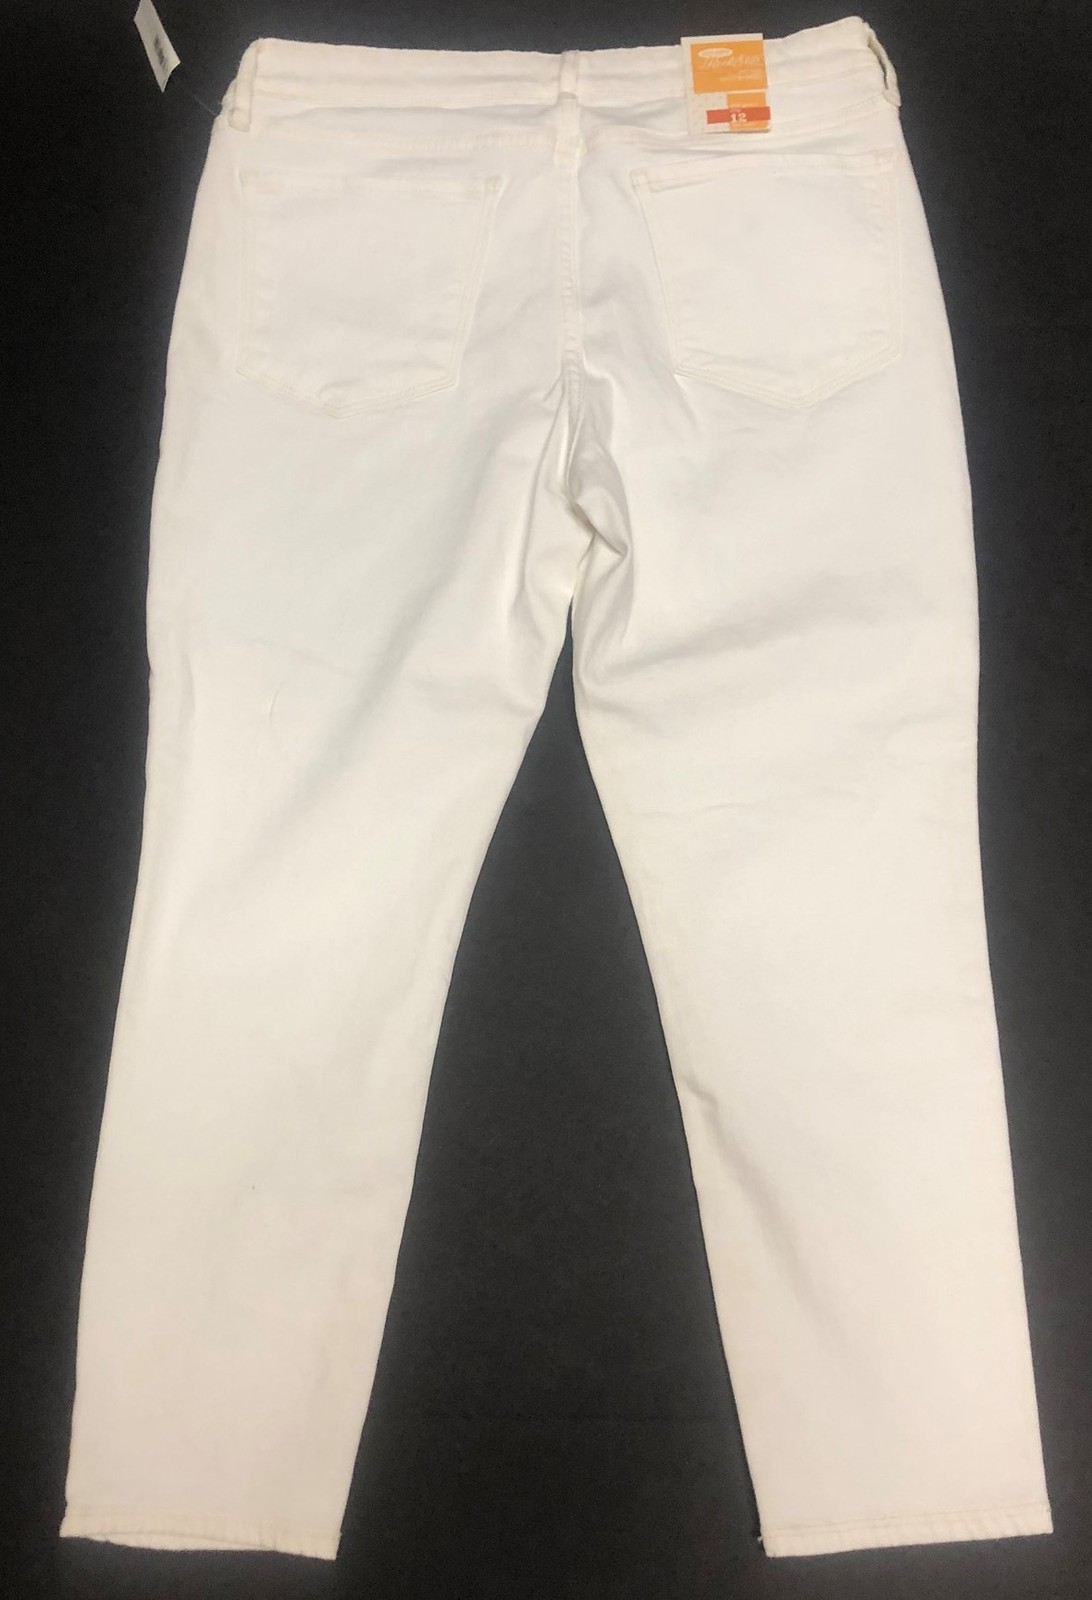 Old Navy Rock Star White Crop Jeans Sz 12 image 6